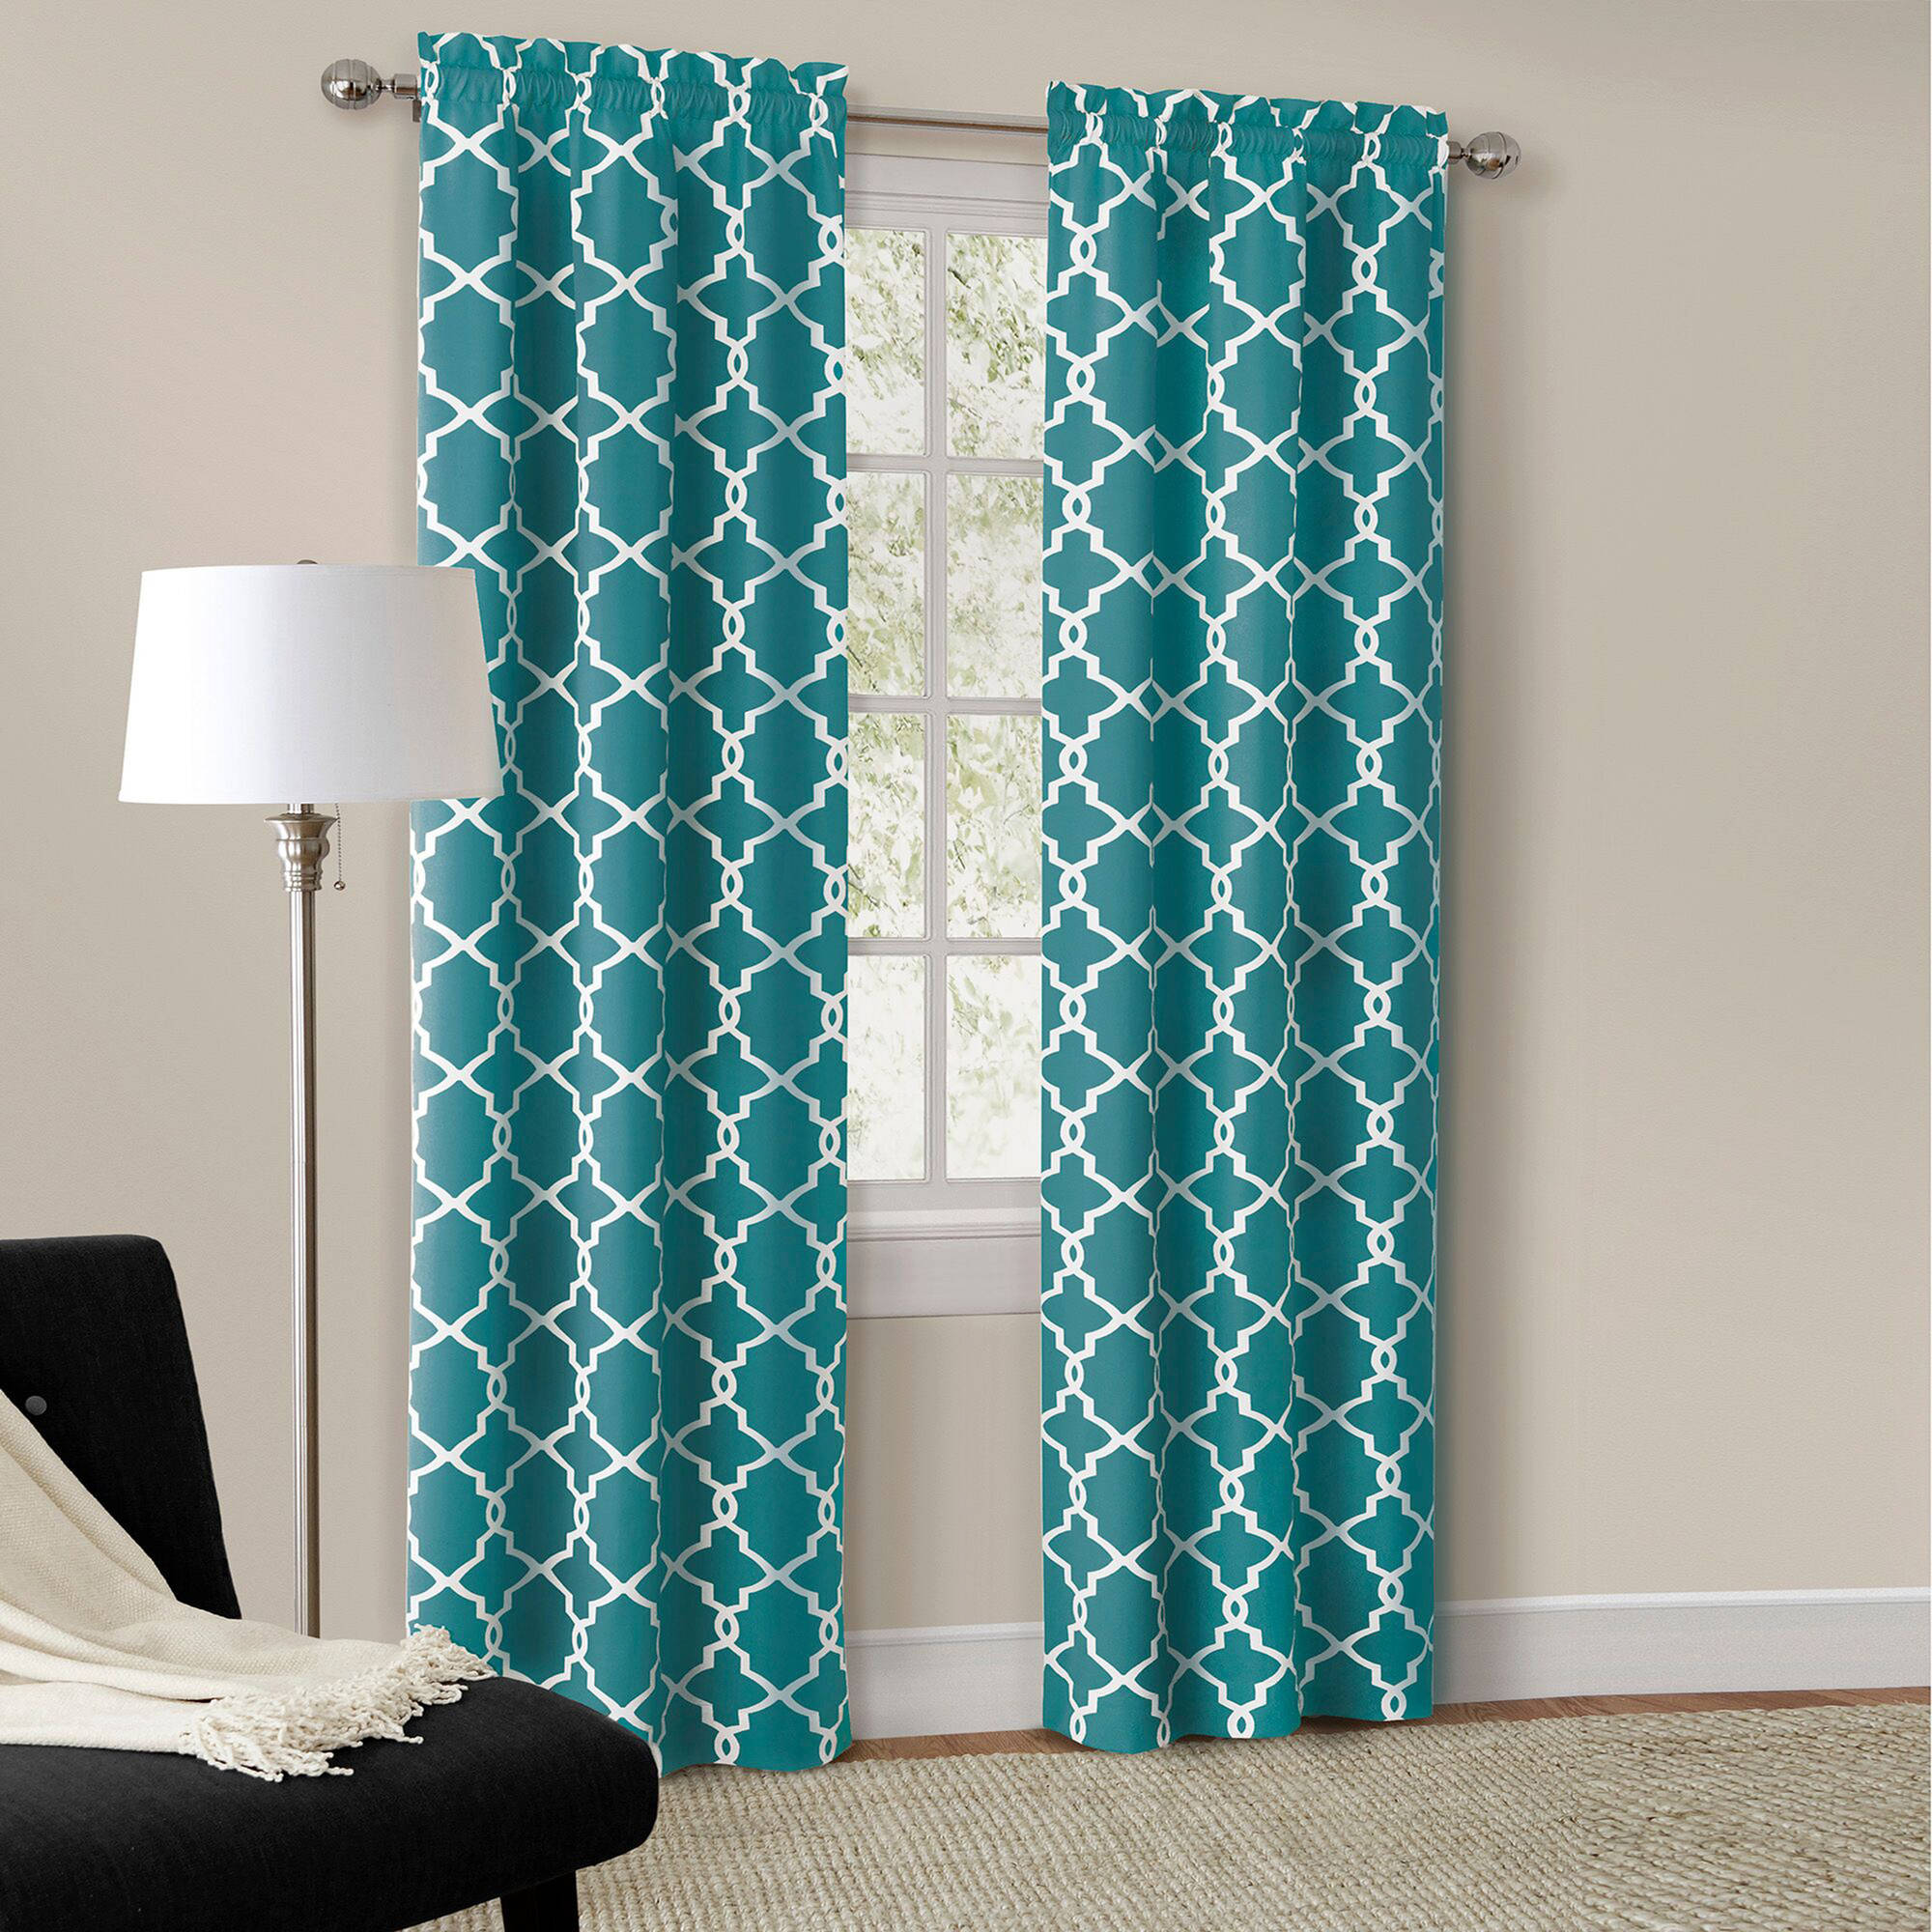 Walmart Curtains For Living Room Beauteous Mainstays Calix Fashion Window Curtain Set Of 2  Walmart Decorating Design